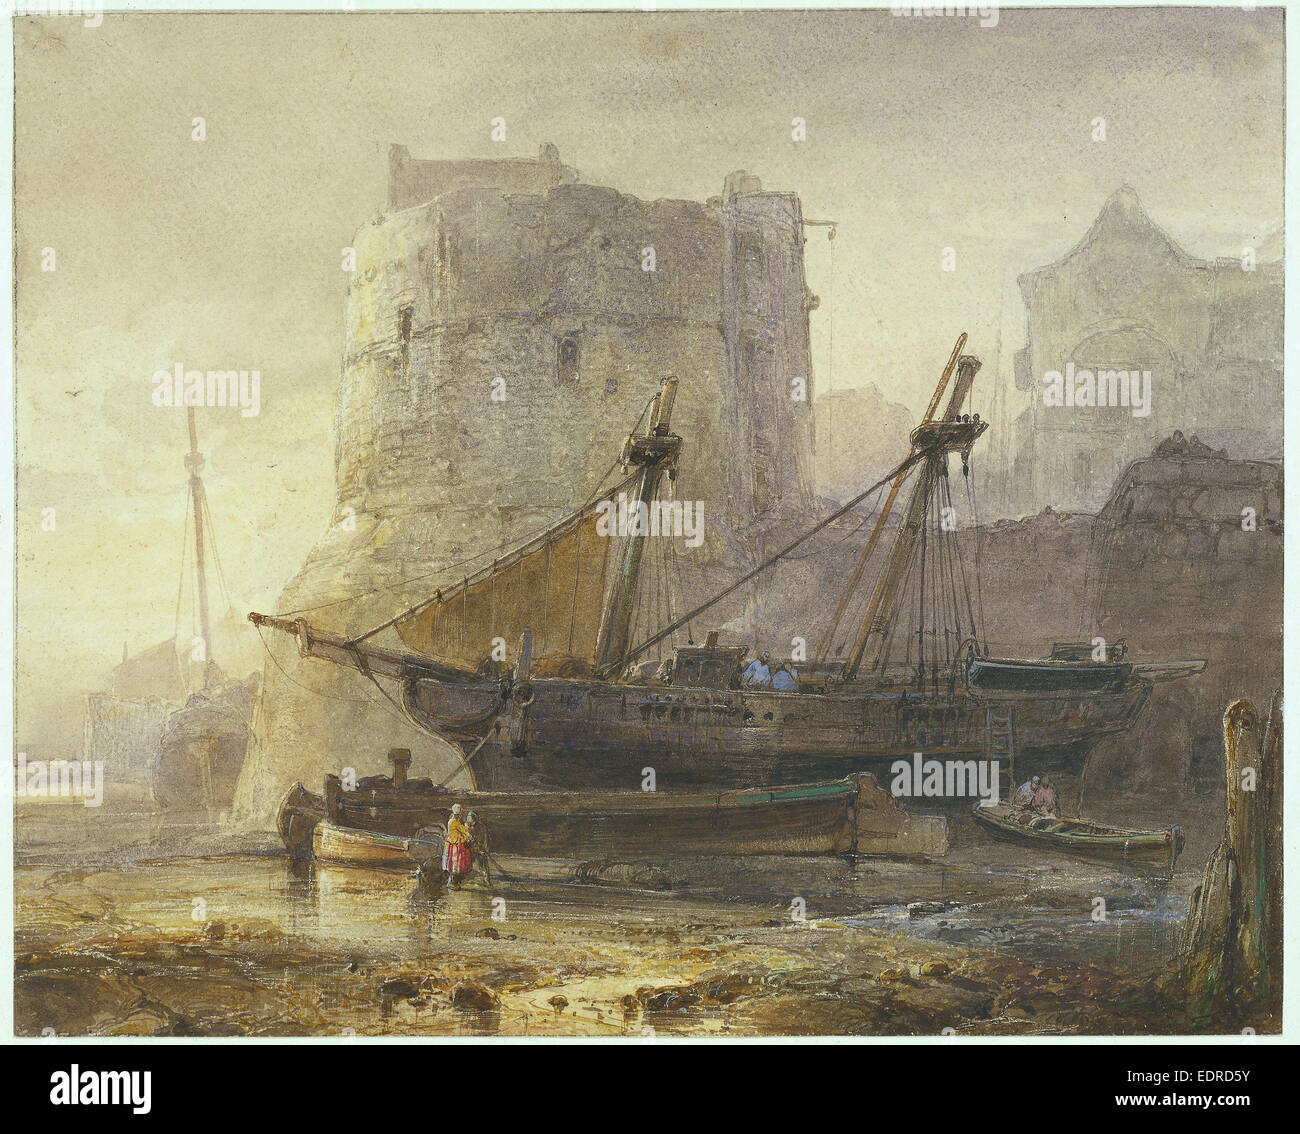 Ships at low tide in a French port, Wijnand Nuijen, 1836 - Stock Image